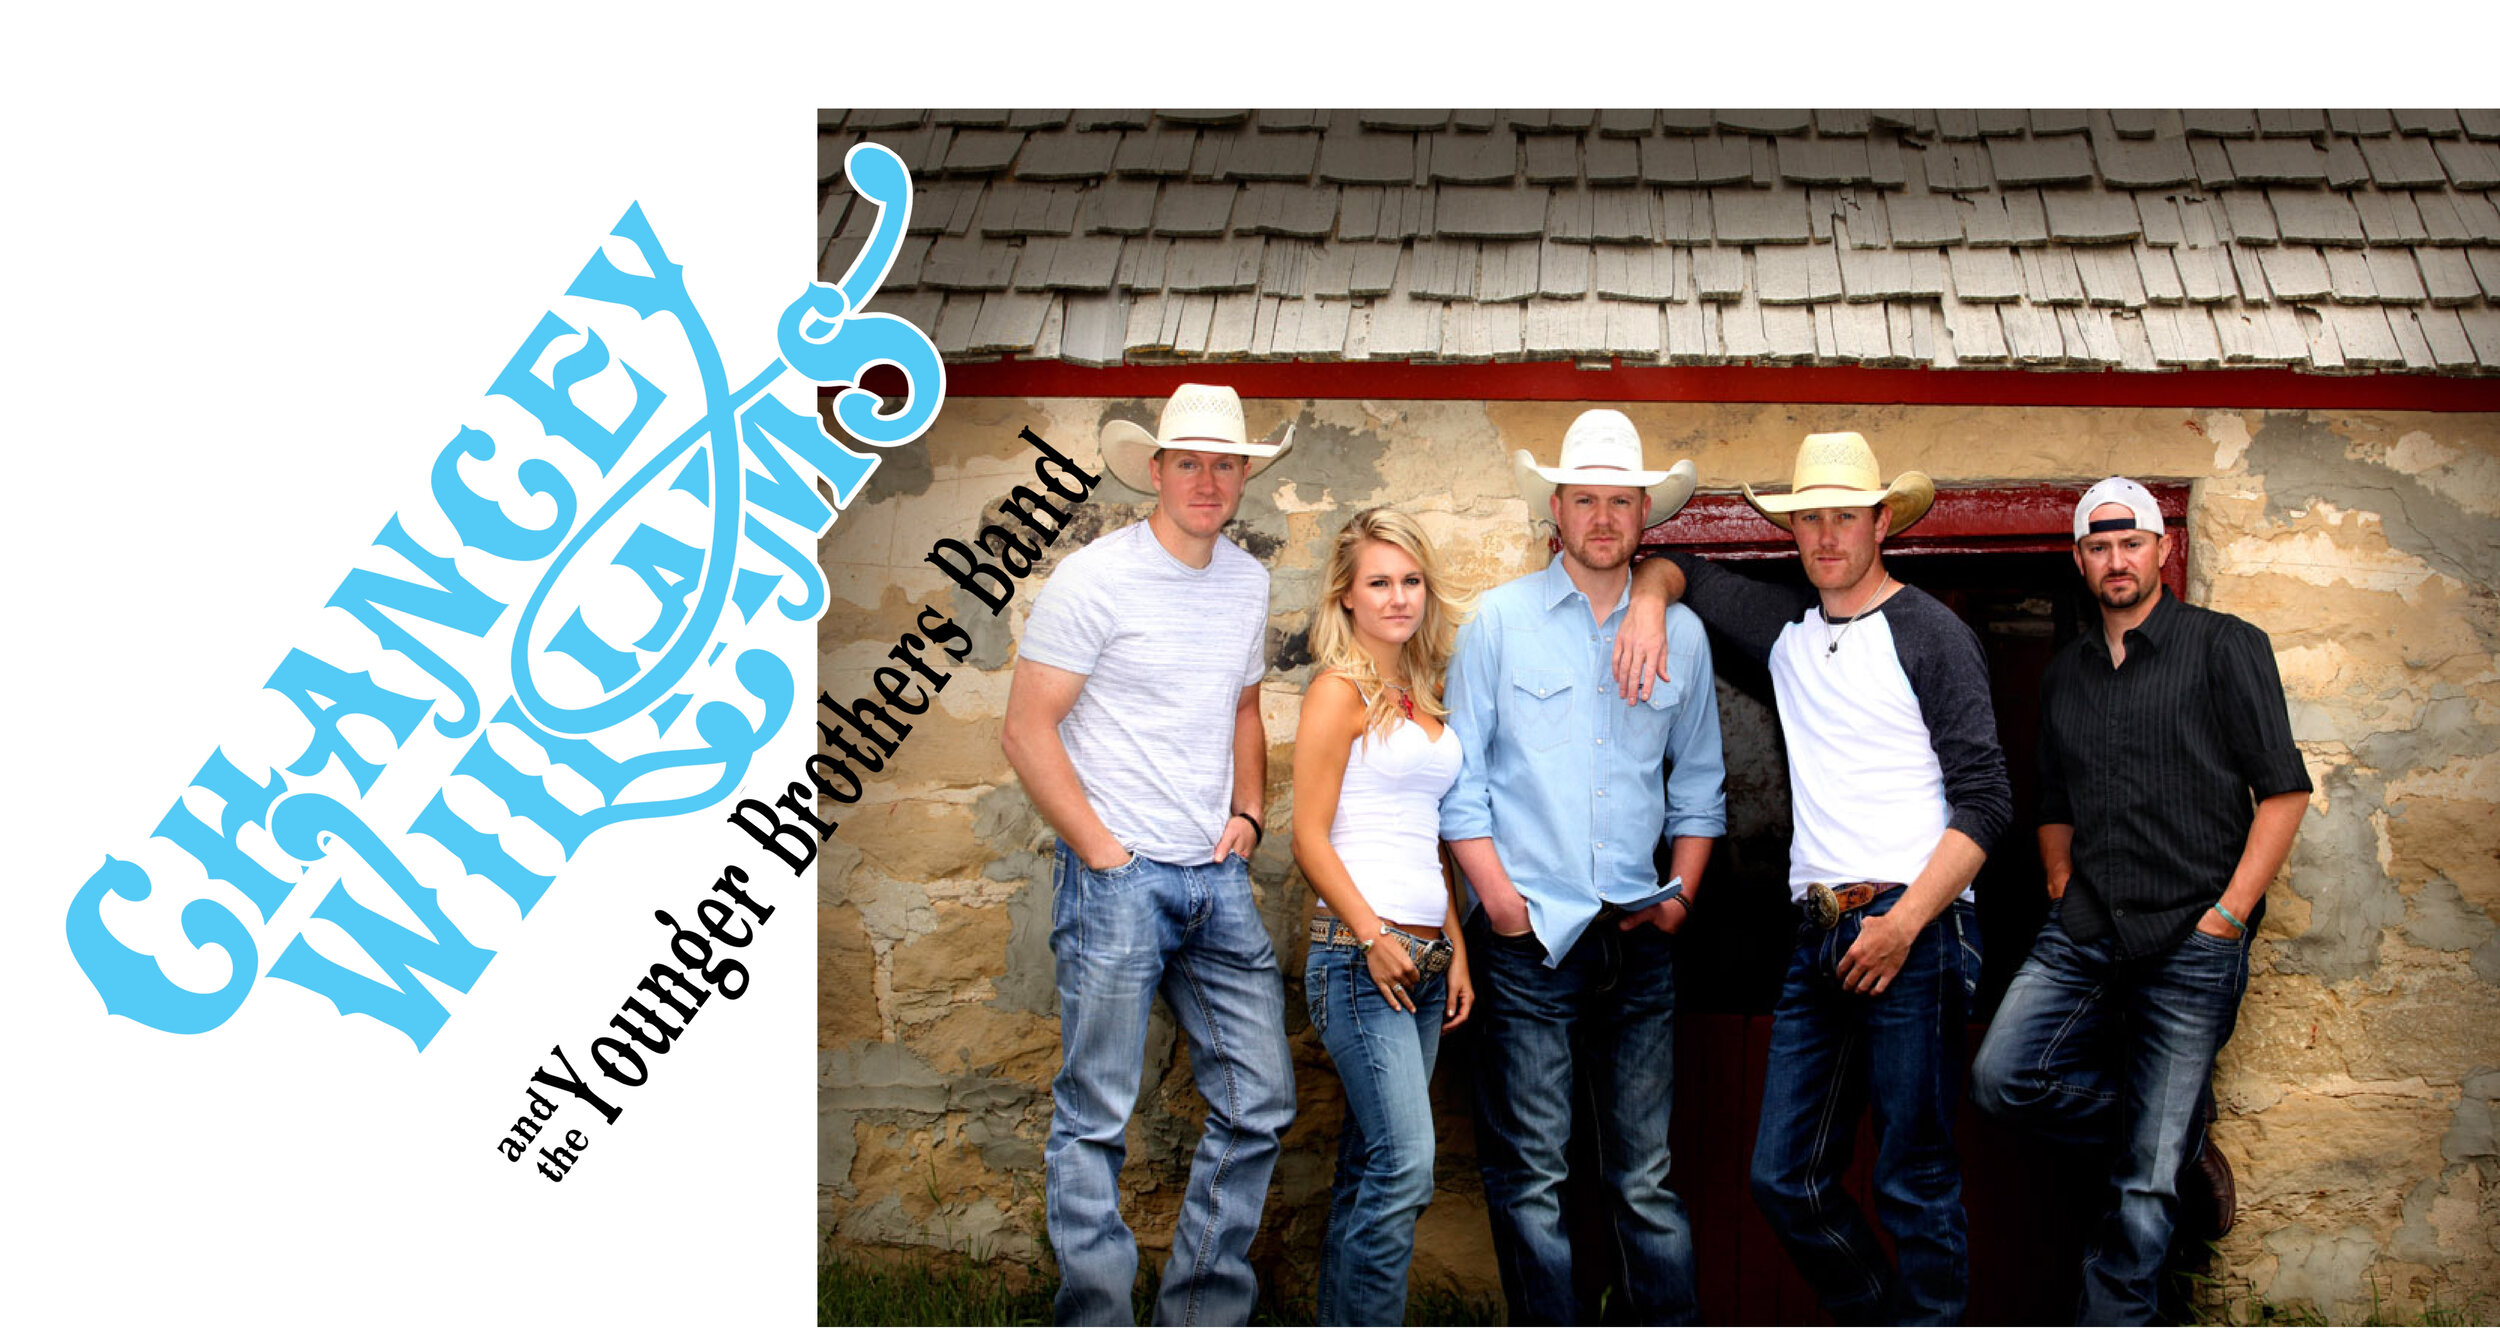 We can't wait to have Chancey and the gang make their Warehouse debut on November 15! Tickets on sale now! Get em while ya can… let's get a little Western up in here!